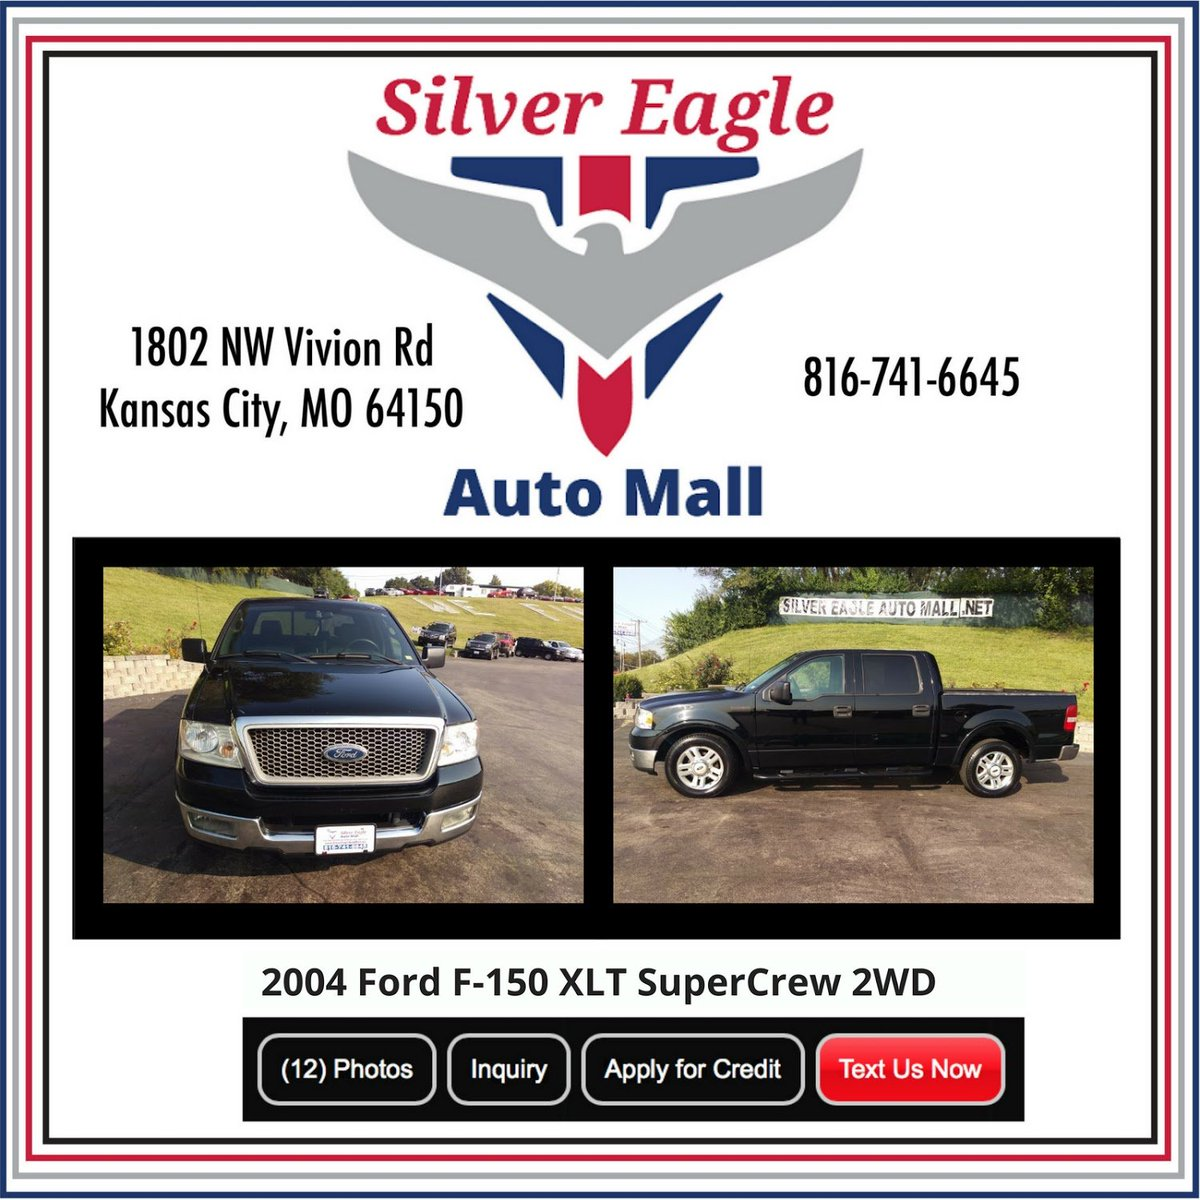 Silvereagleautomall Hashtag On Twitter 2004 Ford F 150 Xlt Supercrew 0 Replies Retweets Likes